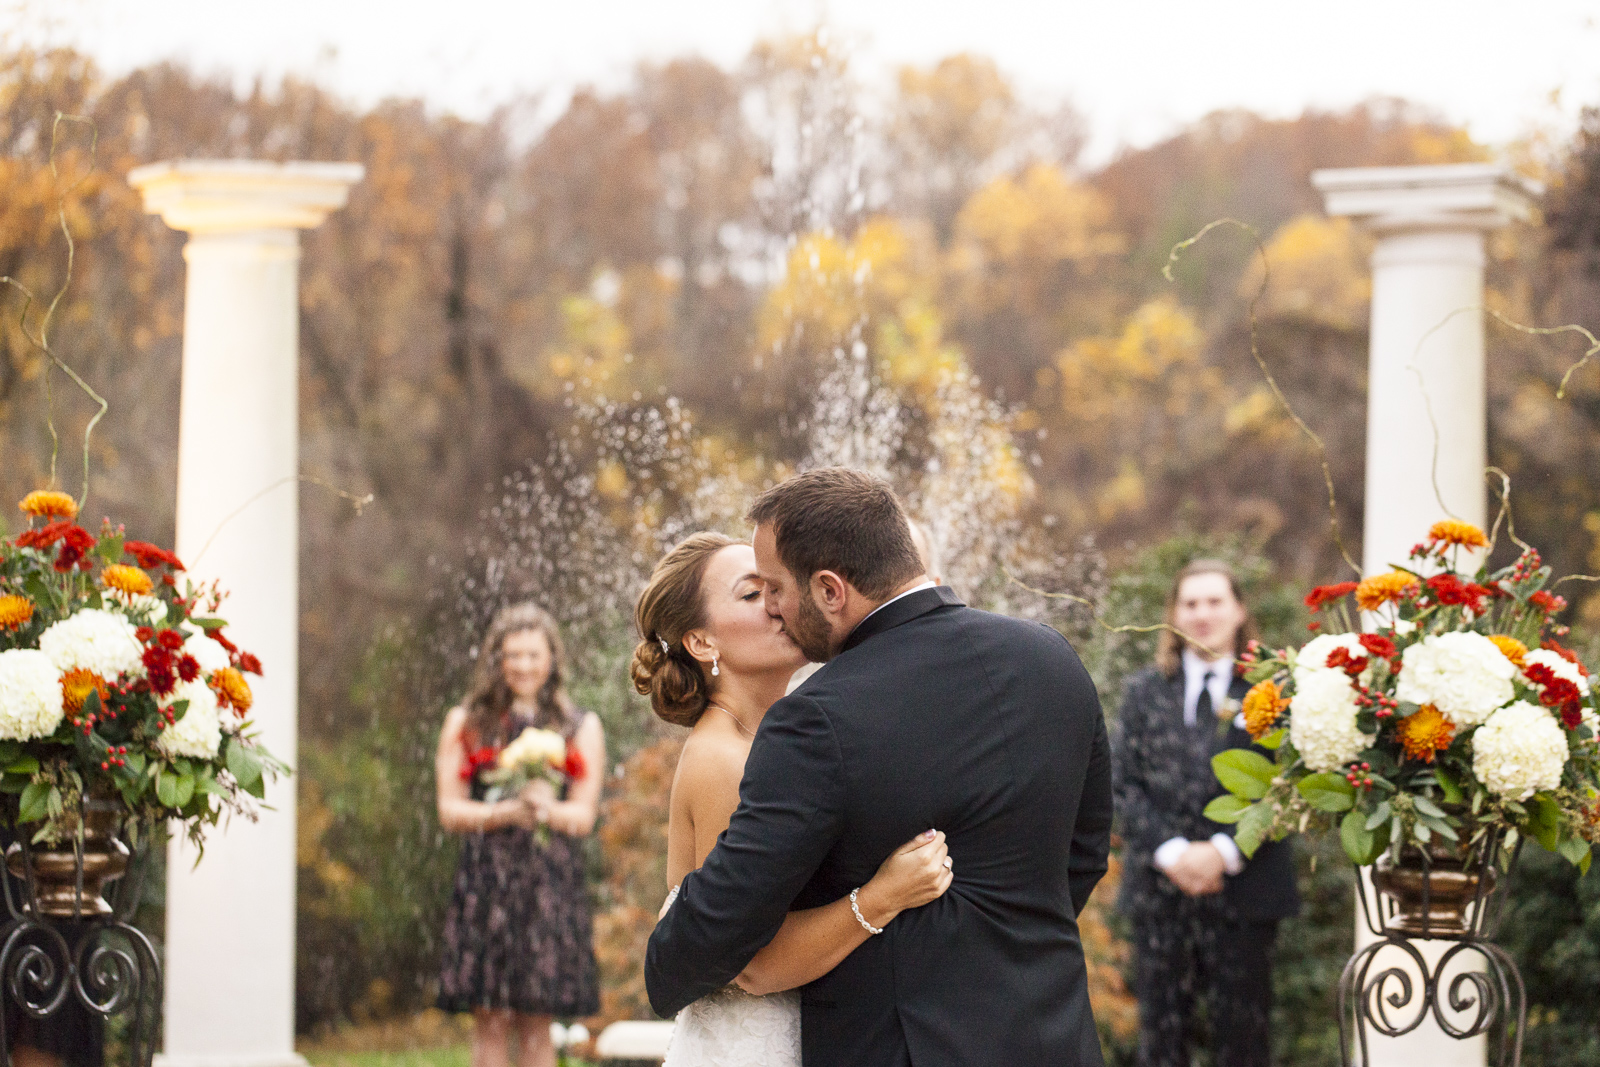 The wedding of Krista Boyd and Matt Wolfe at the Chestnut Hill Bed and Breakfast in Orange, VA, November 7, 2015. ©Lindsay King Photography/2015